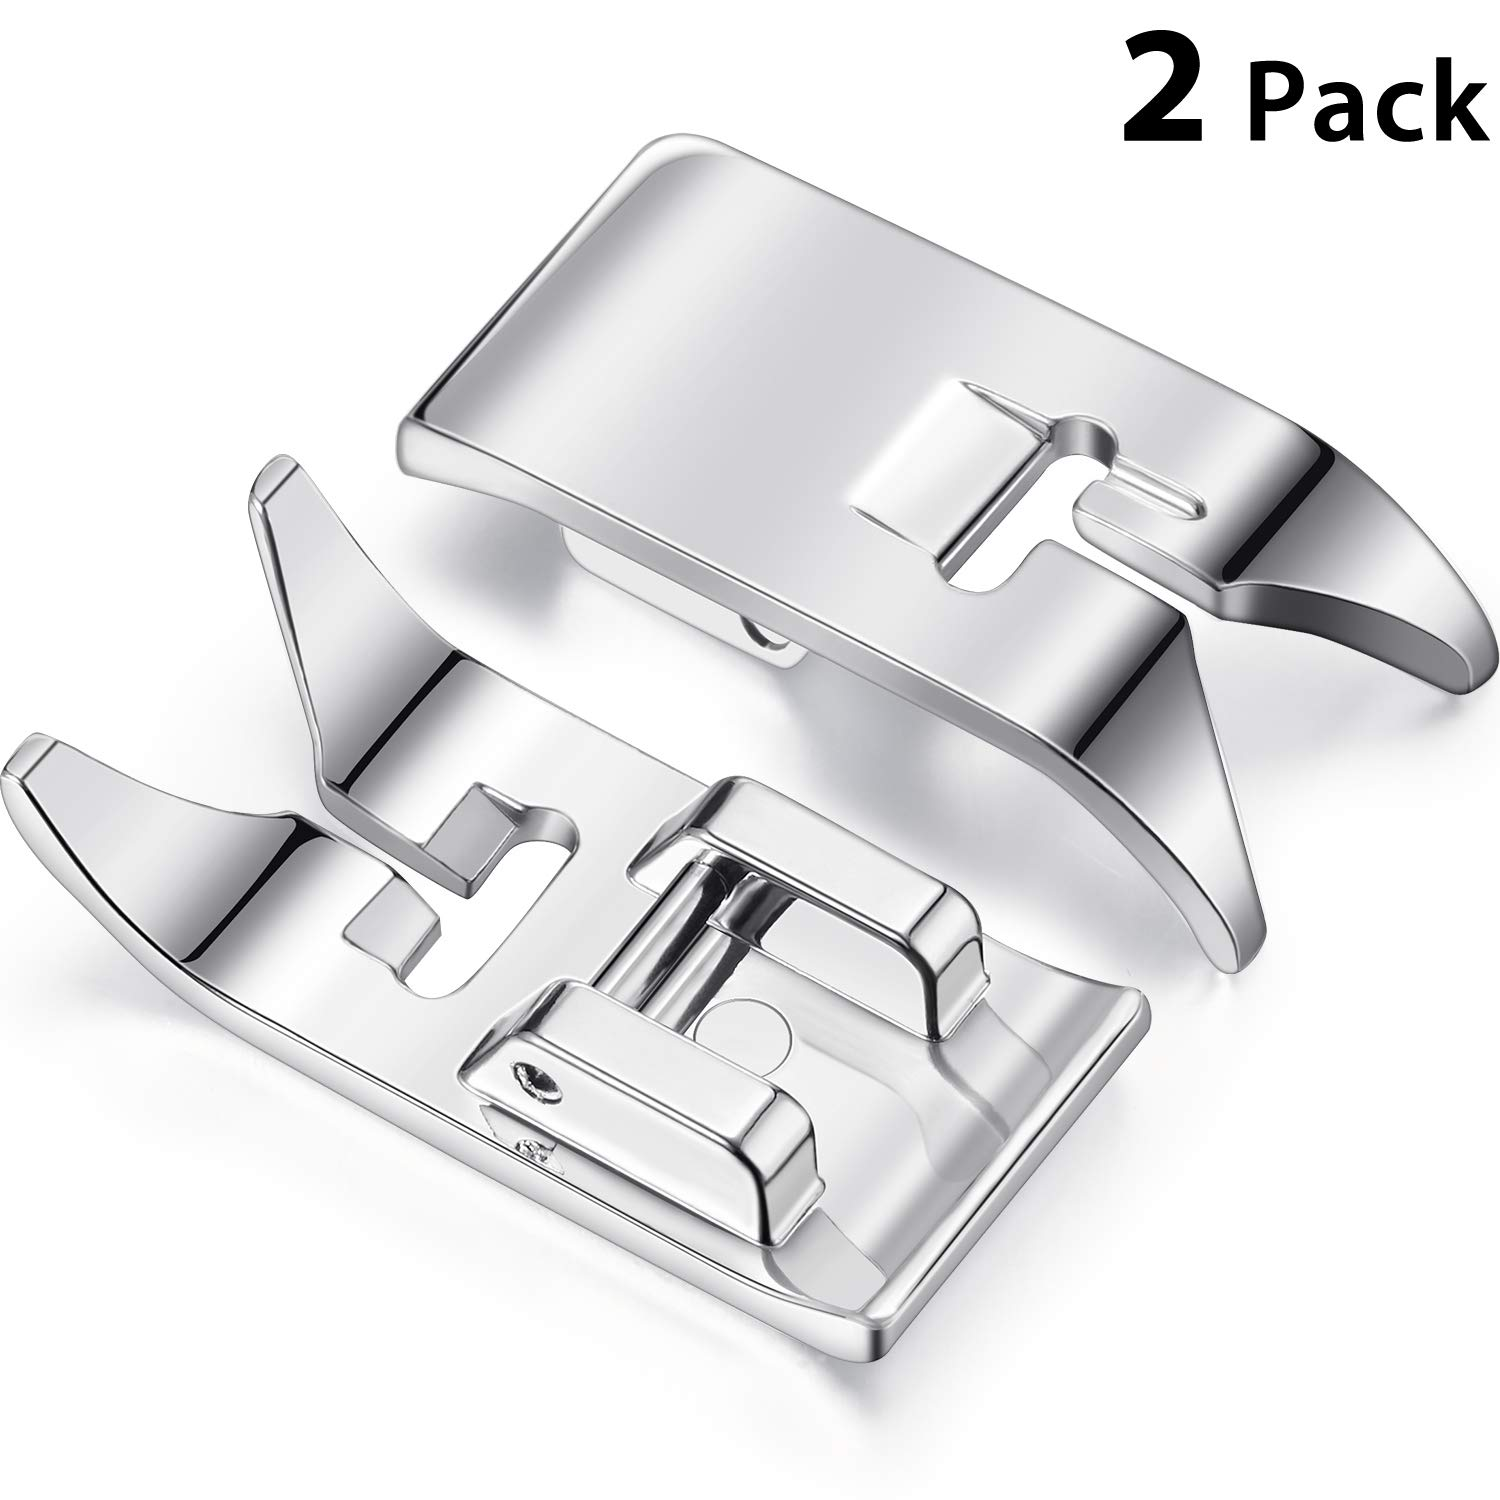 2 Pieces Sewing Machine Presser Foot Straight Stitch Snap On Foot Universal General Purpose Zig Zag Foot for Most Sewing Machines Domestic Low Shank Sewing Machines